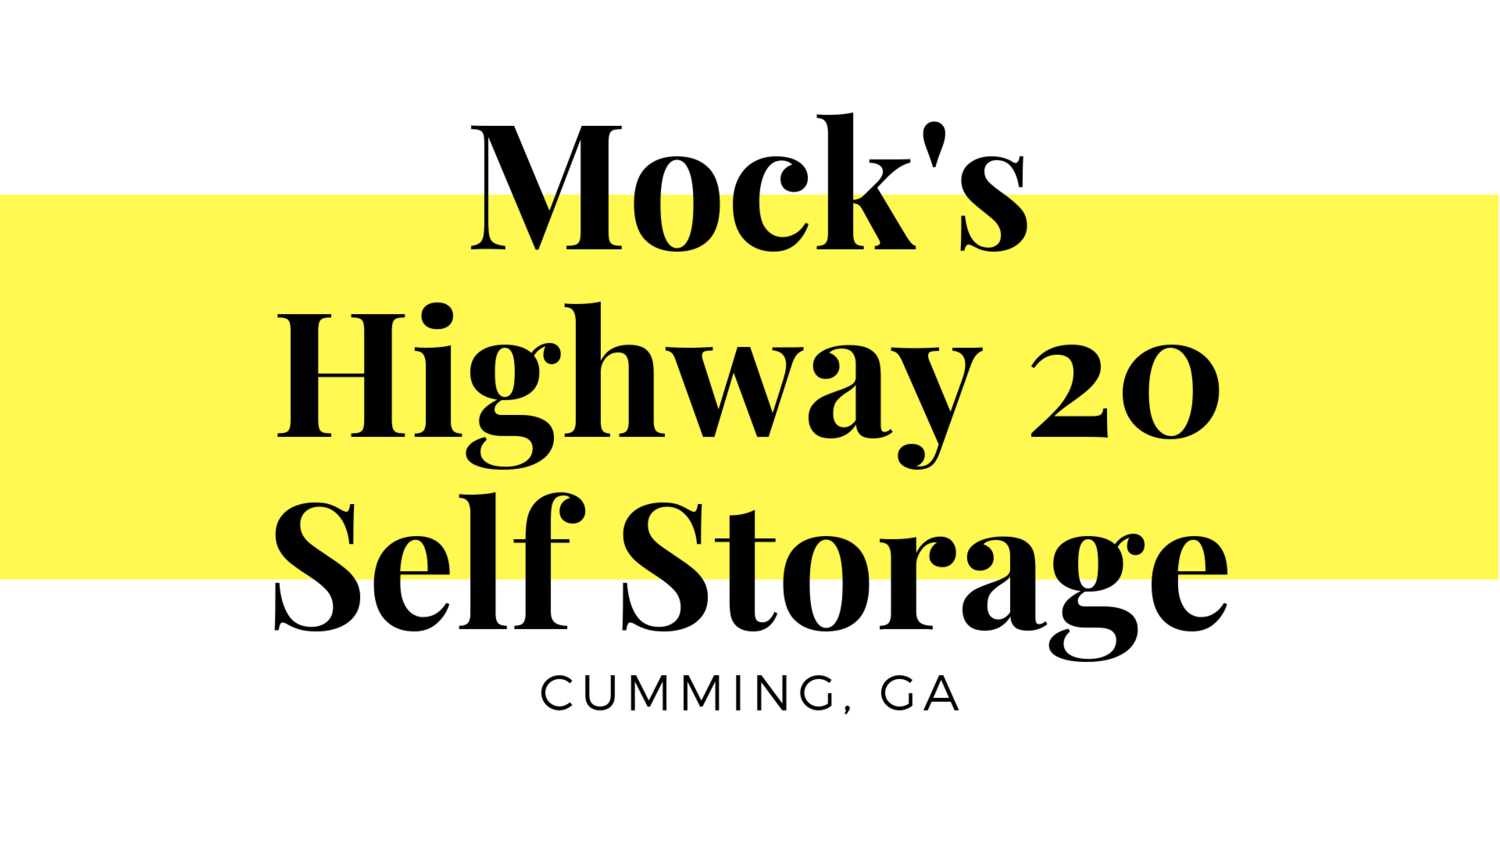 Mock's Highway 20 Self Storage